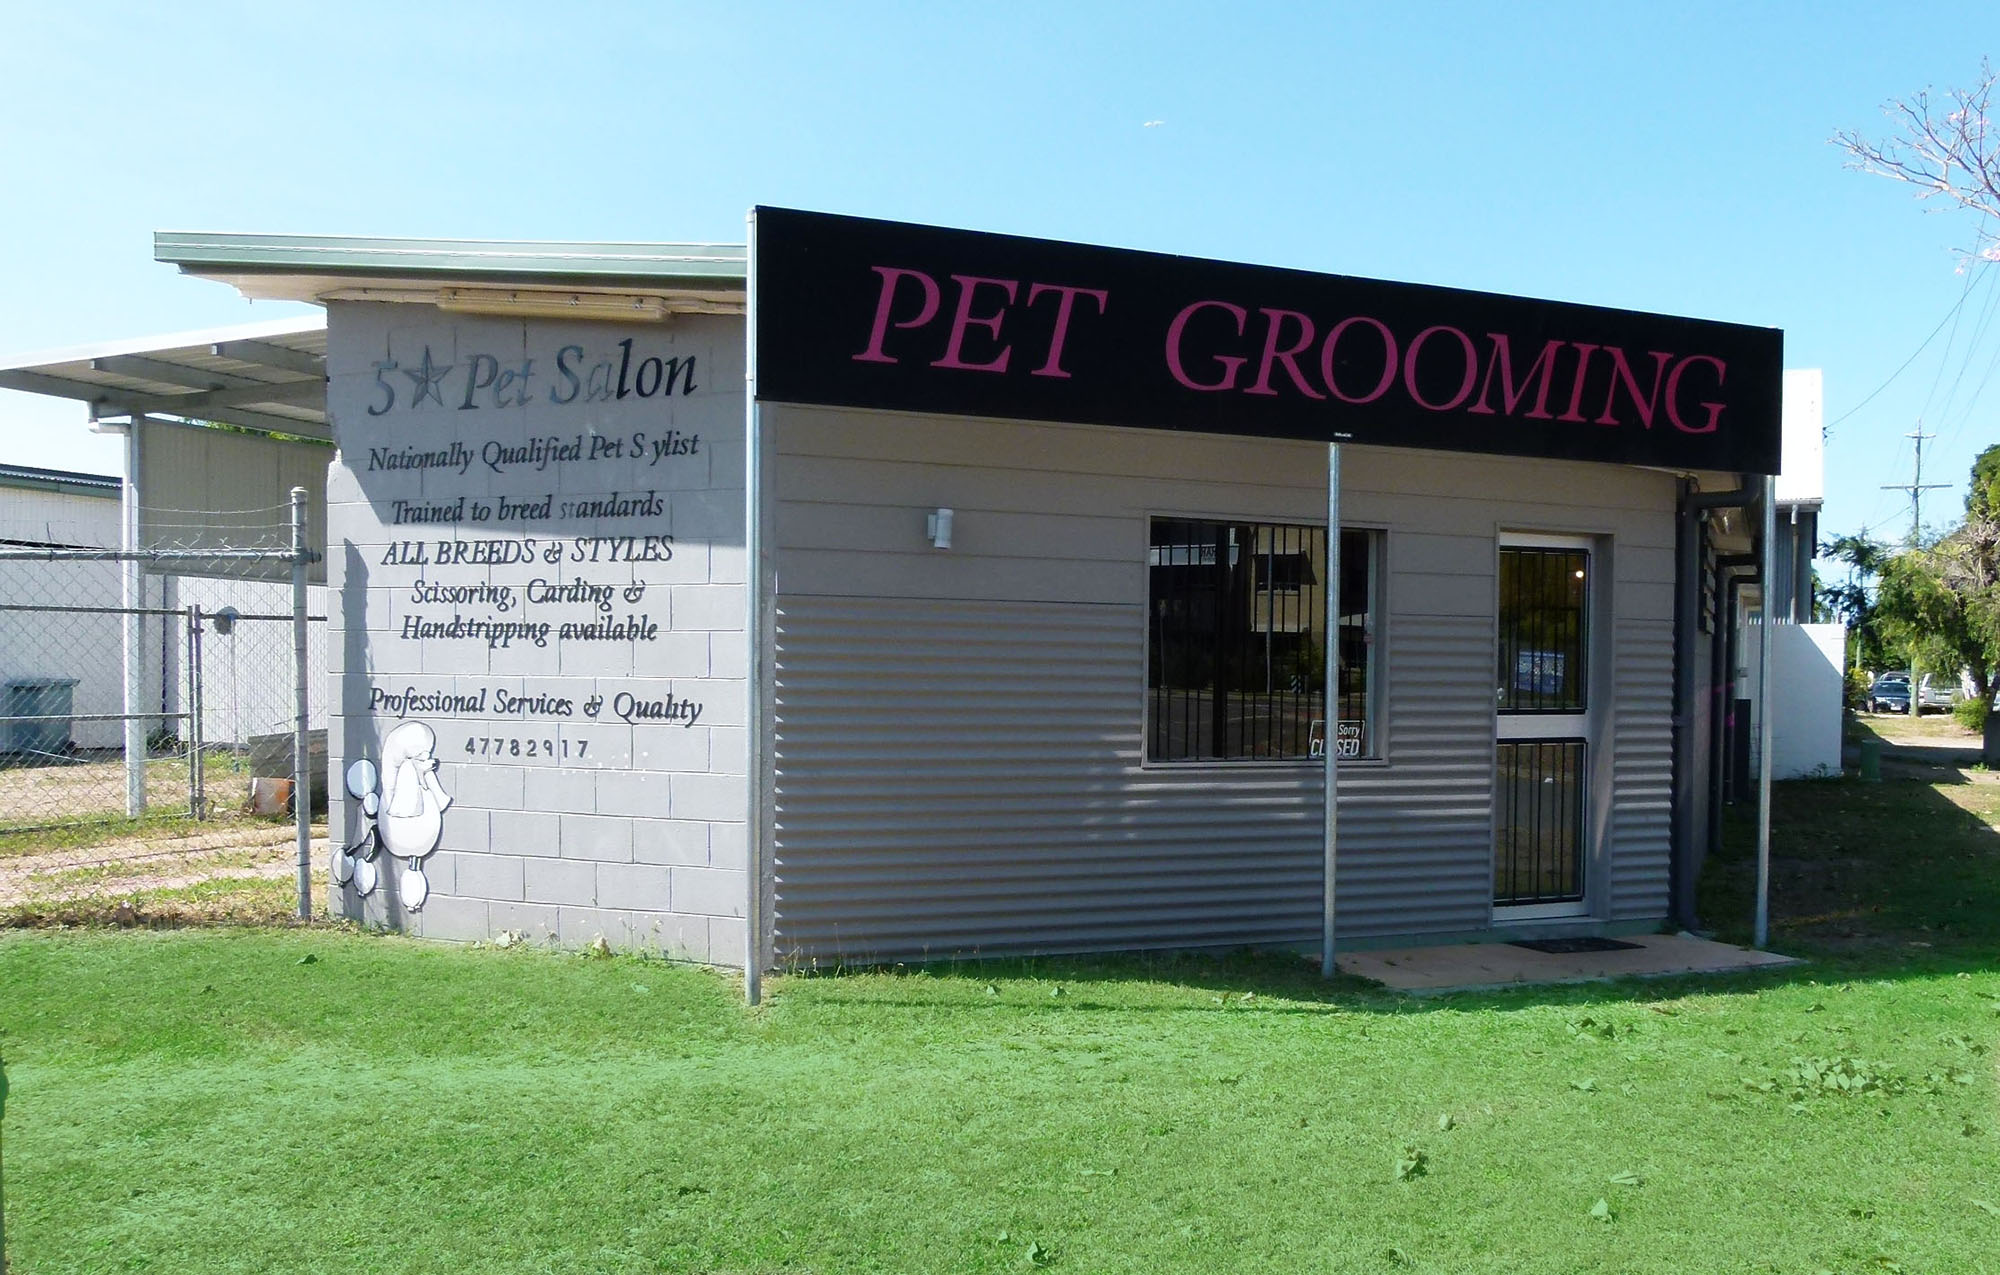 Gorgeous Grooming – 5 Star Pet Salon Beyond 2000 Business Sales